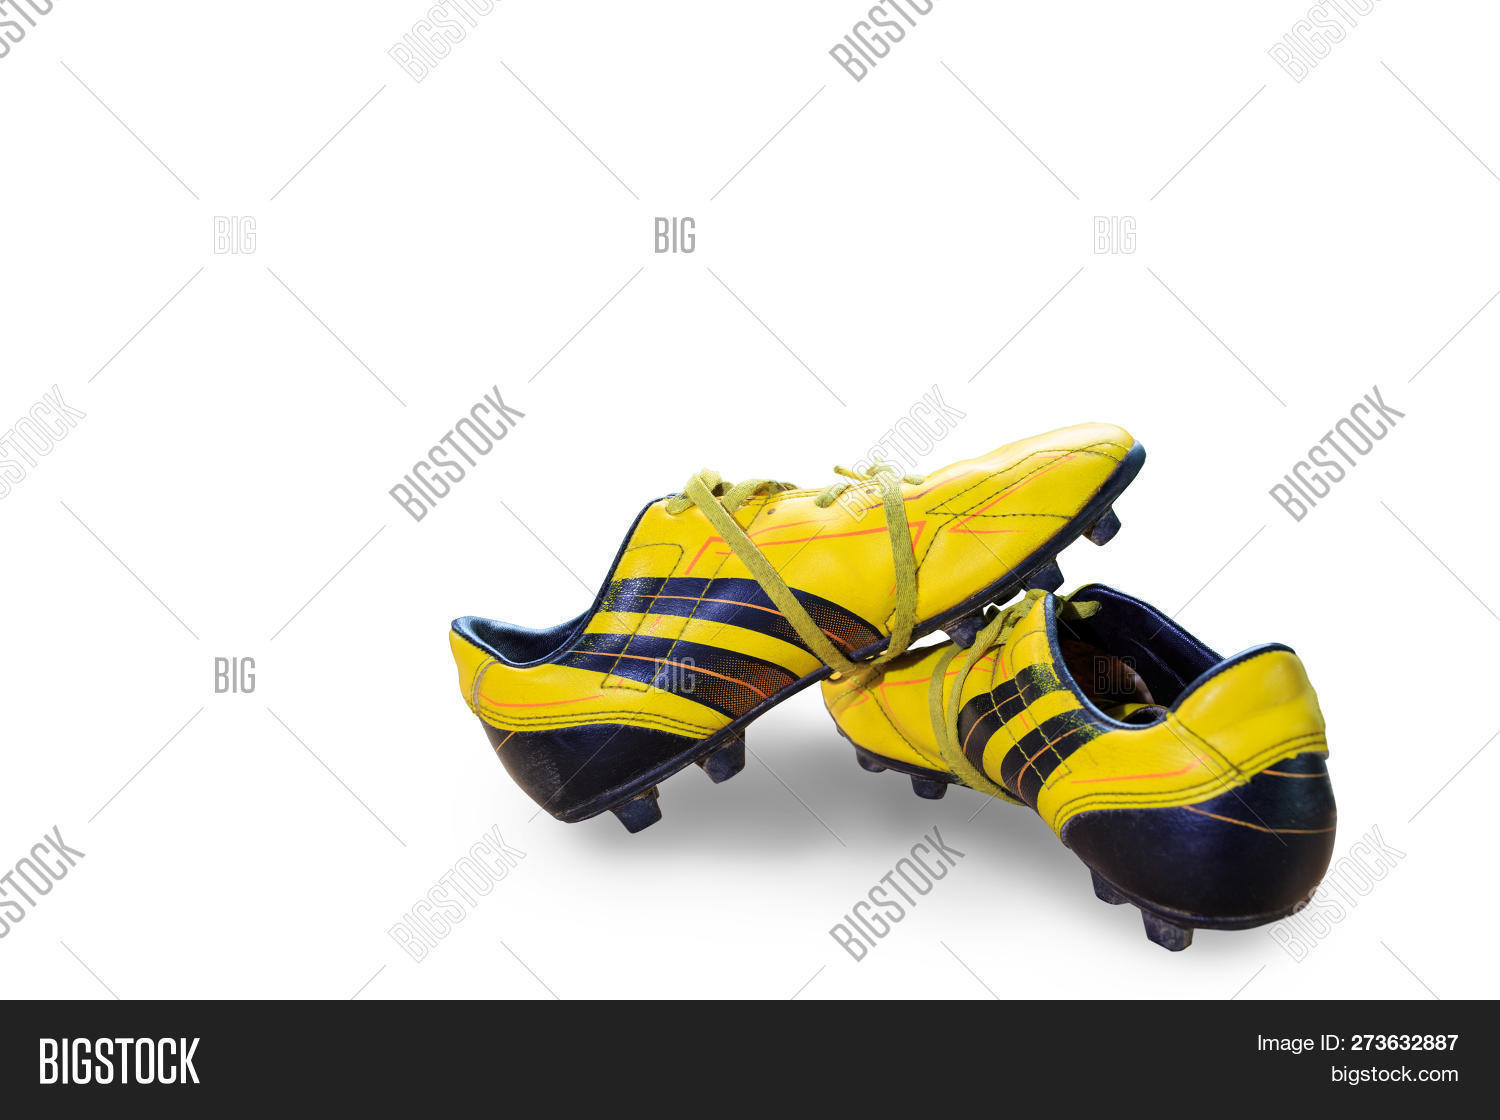 636f76c32 A Pair Of Old Football Boots Old Yellow Football Shoes Placed On A Wooden  Board,